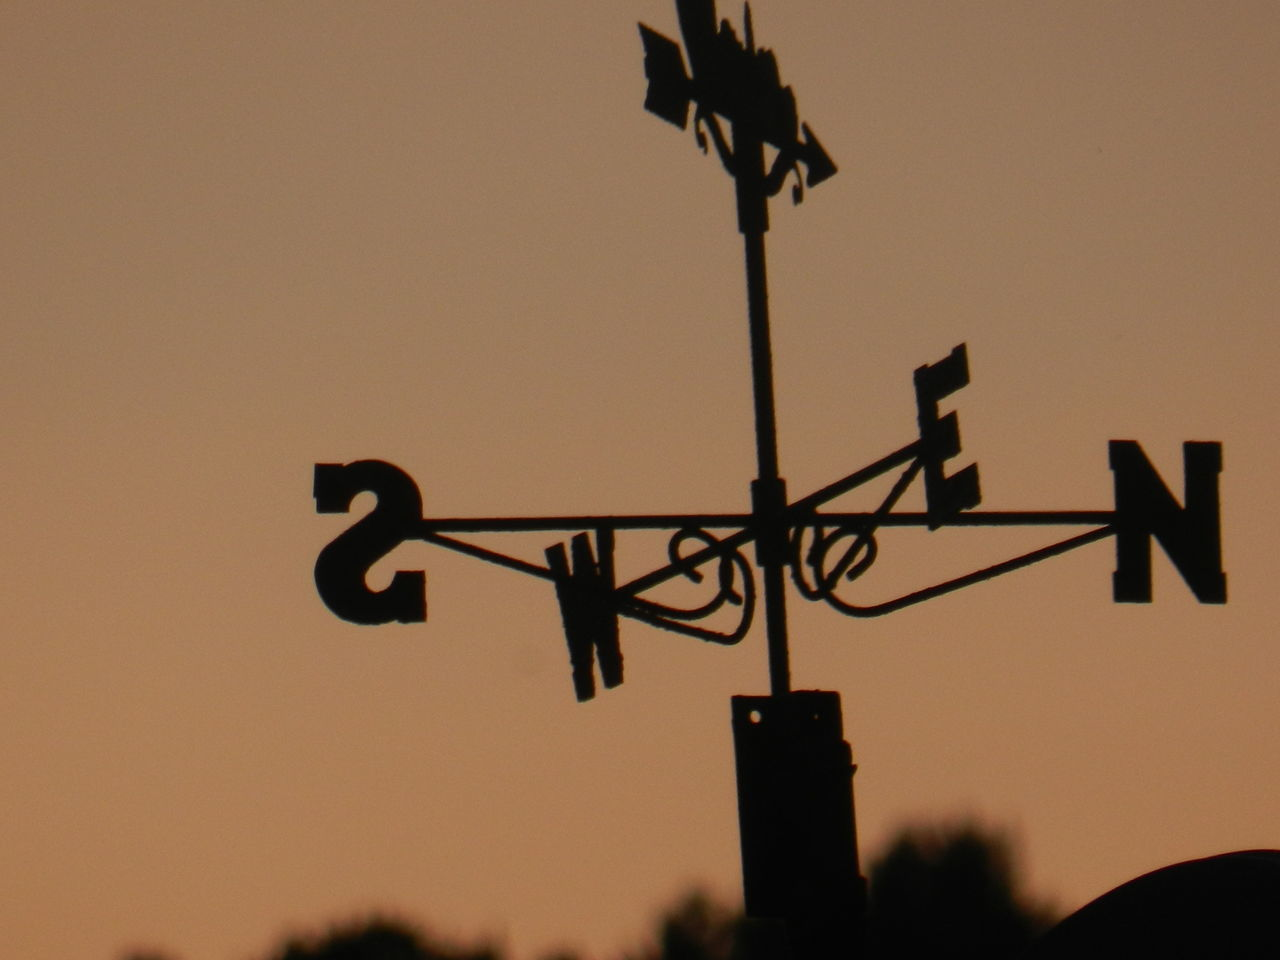 silhouette, direction, guidance, sunset, weather vane, low angle view, communication, no people, dusk, outdoors, clear sky, technology, sky, day, nature